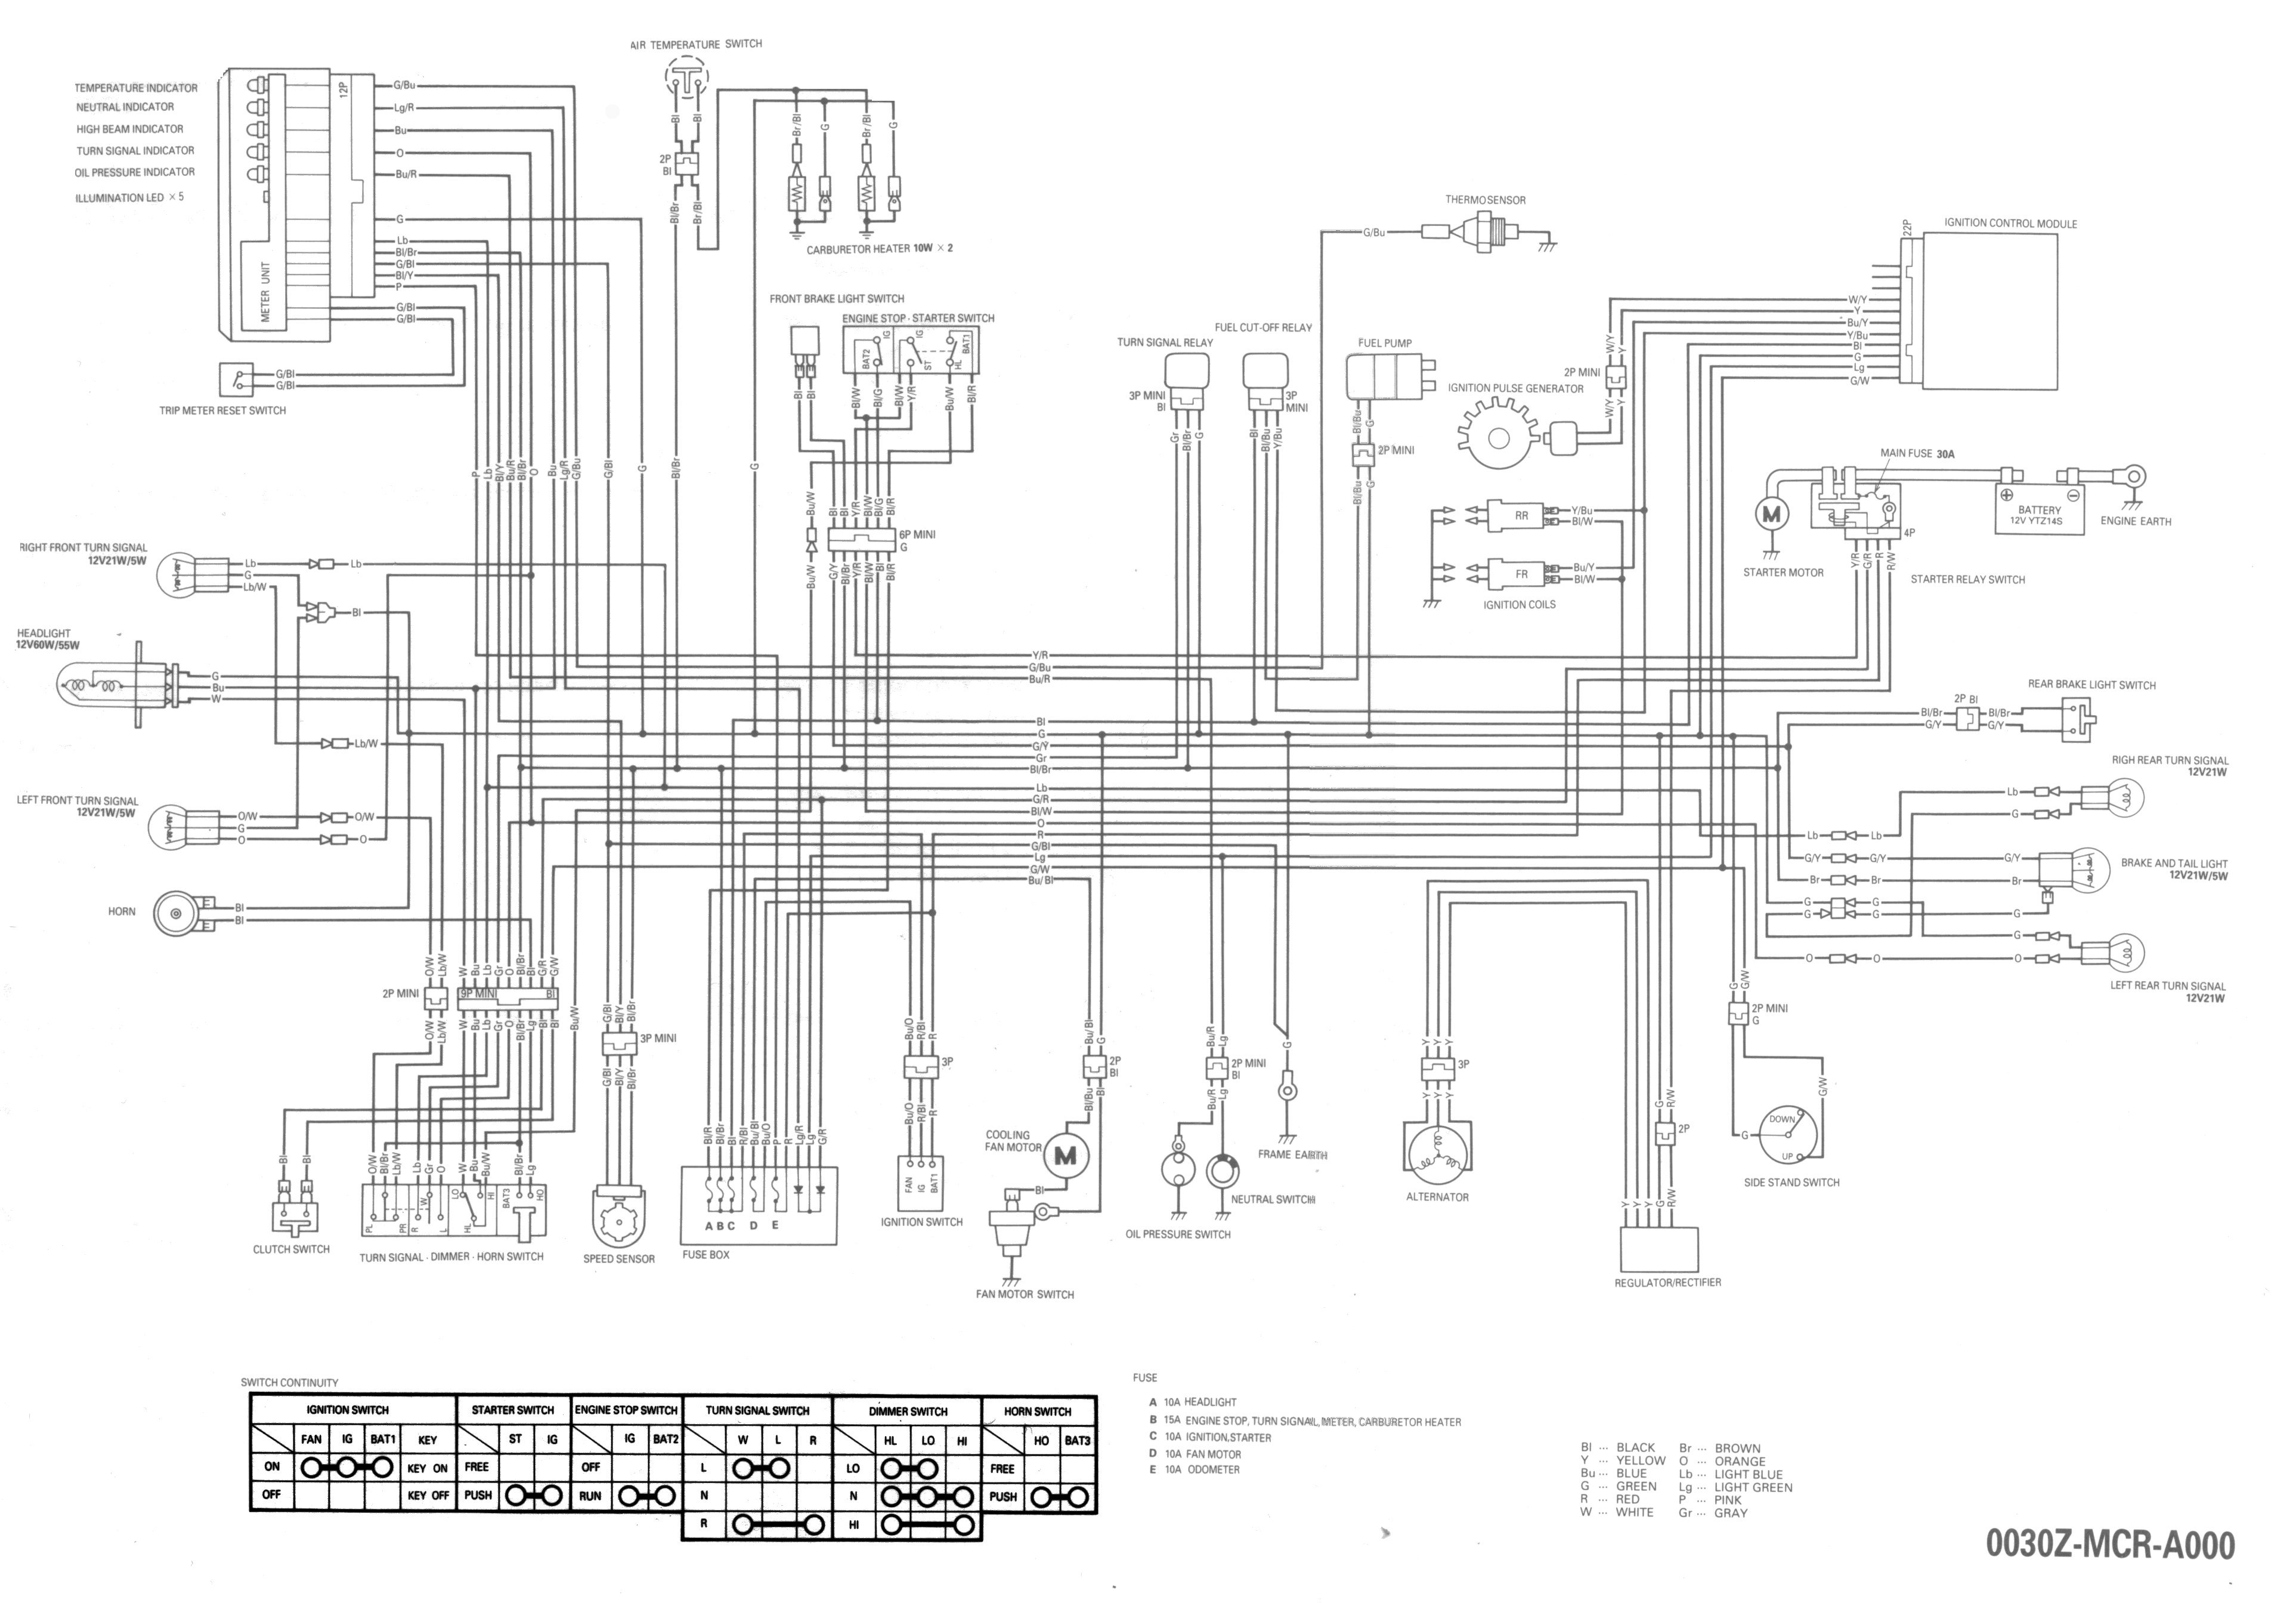 ON_4710] 1986 Honda Shadow 1100 Wiring Diagram Also 1994 Honda Shadow 1100  Free DiagramNorab Istic Xortanet Capem Mohammedshrine Librar Wiring 101